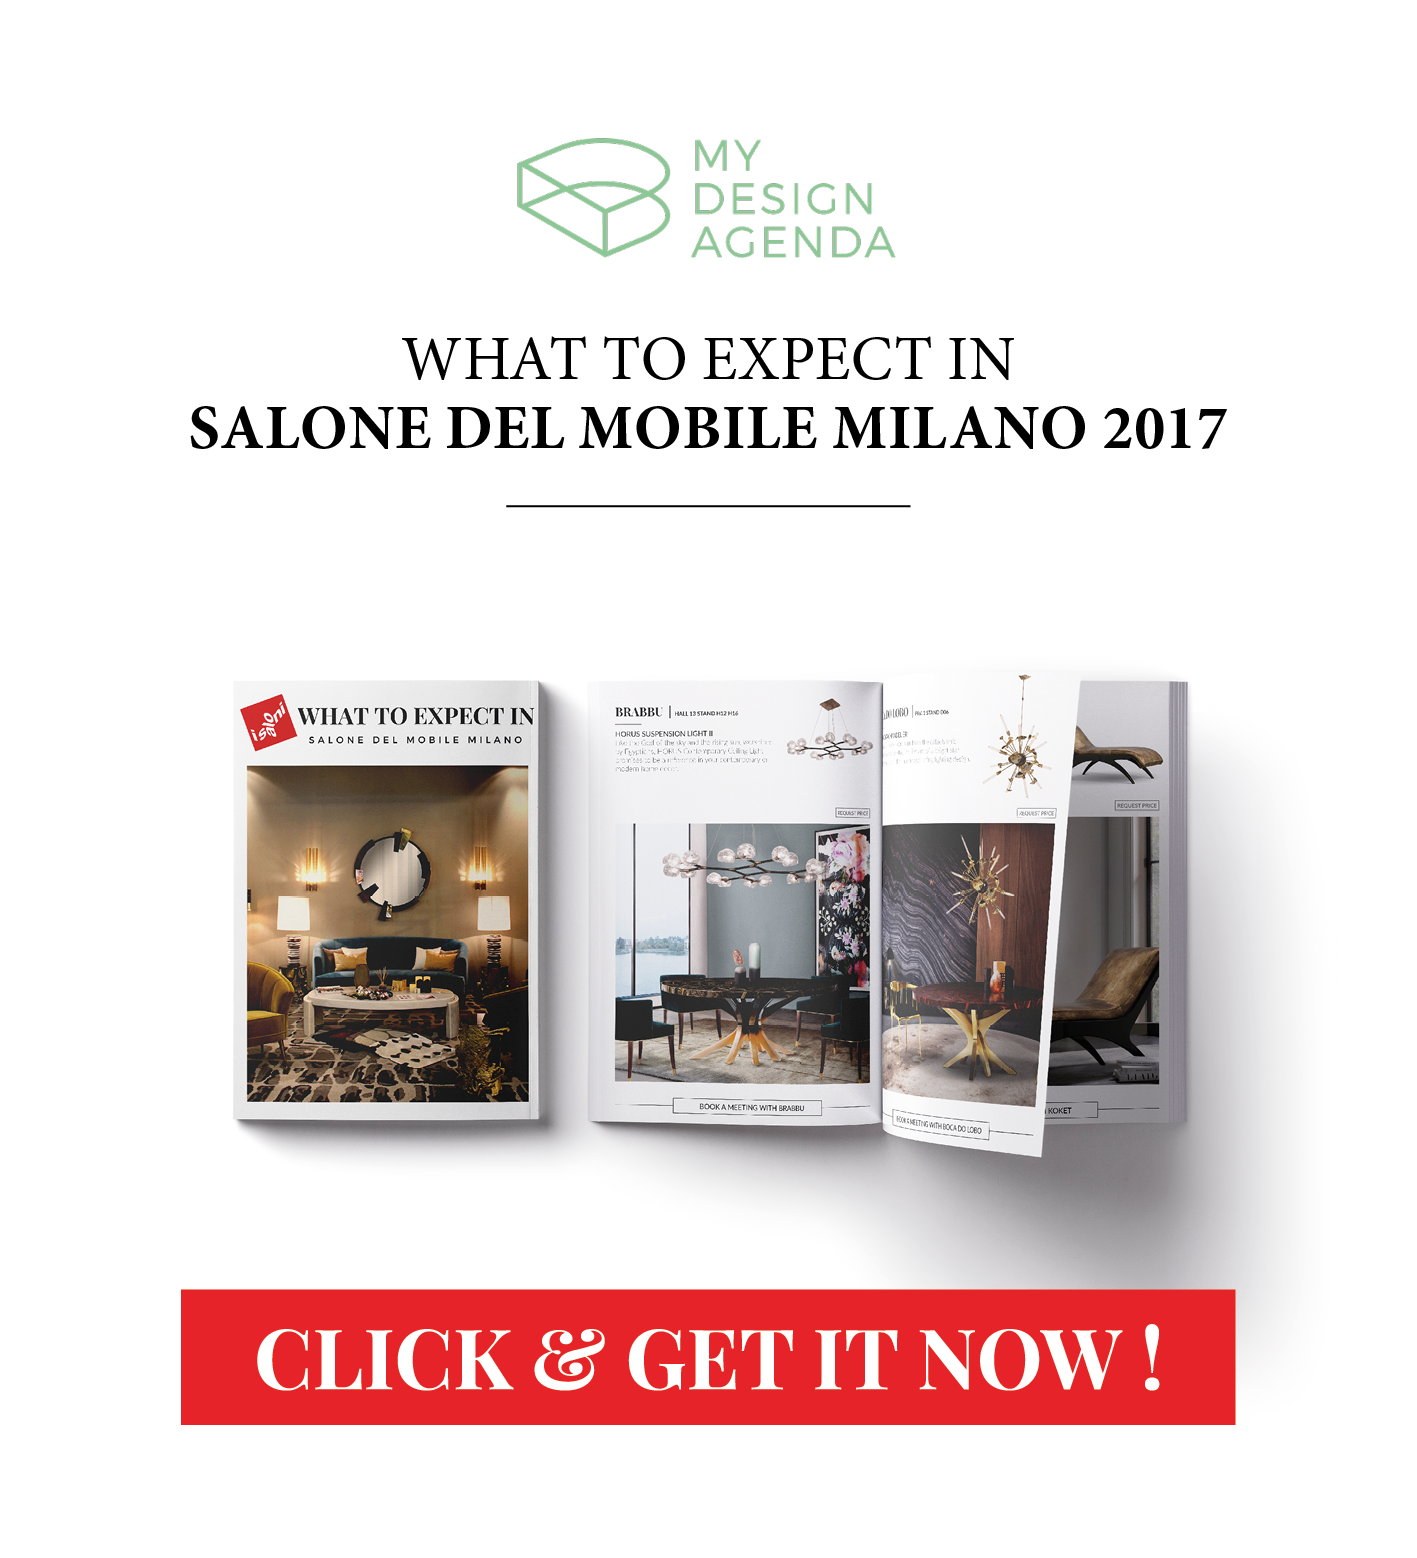 The best of salone del mobile milano 2017 for Fiera del mobile milano 2017